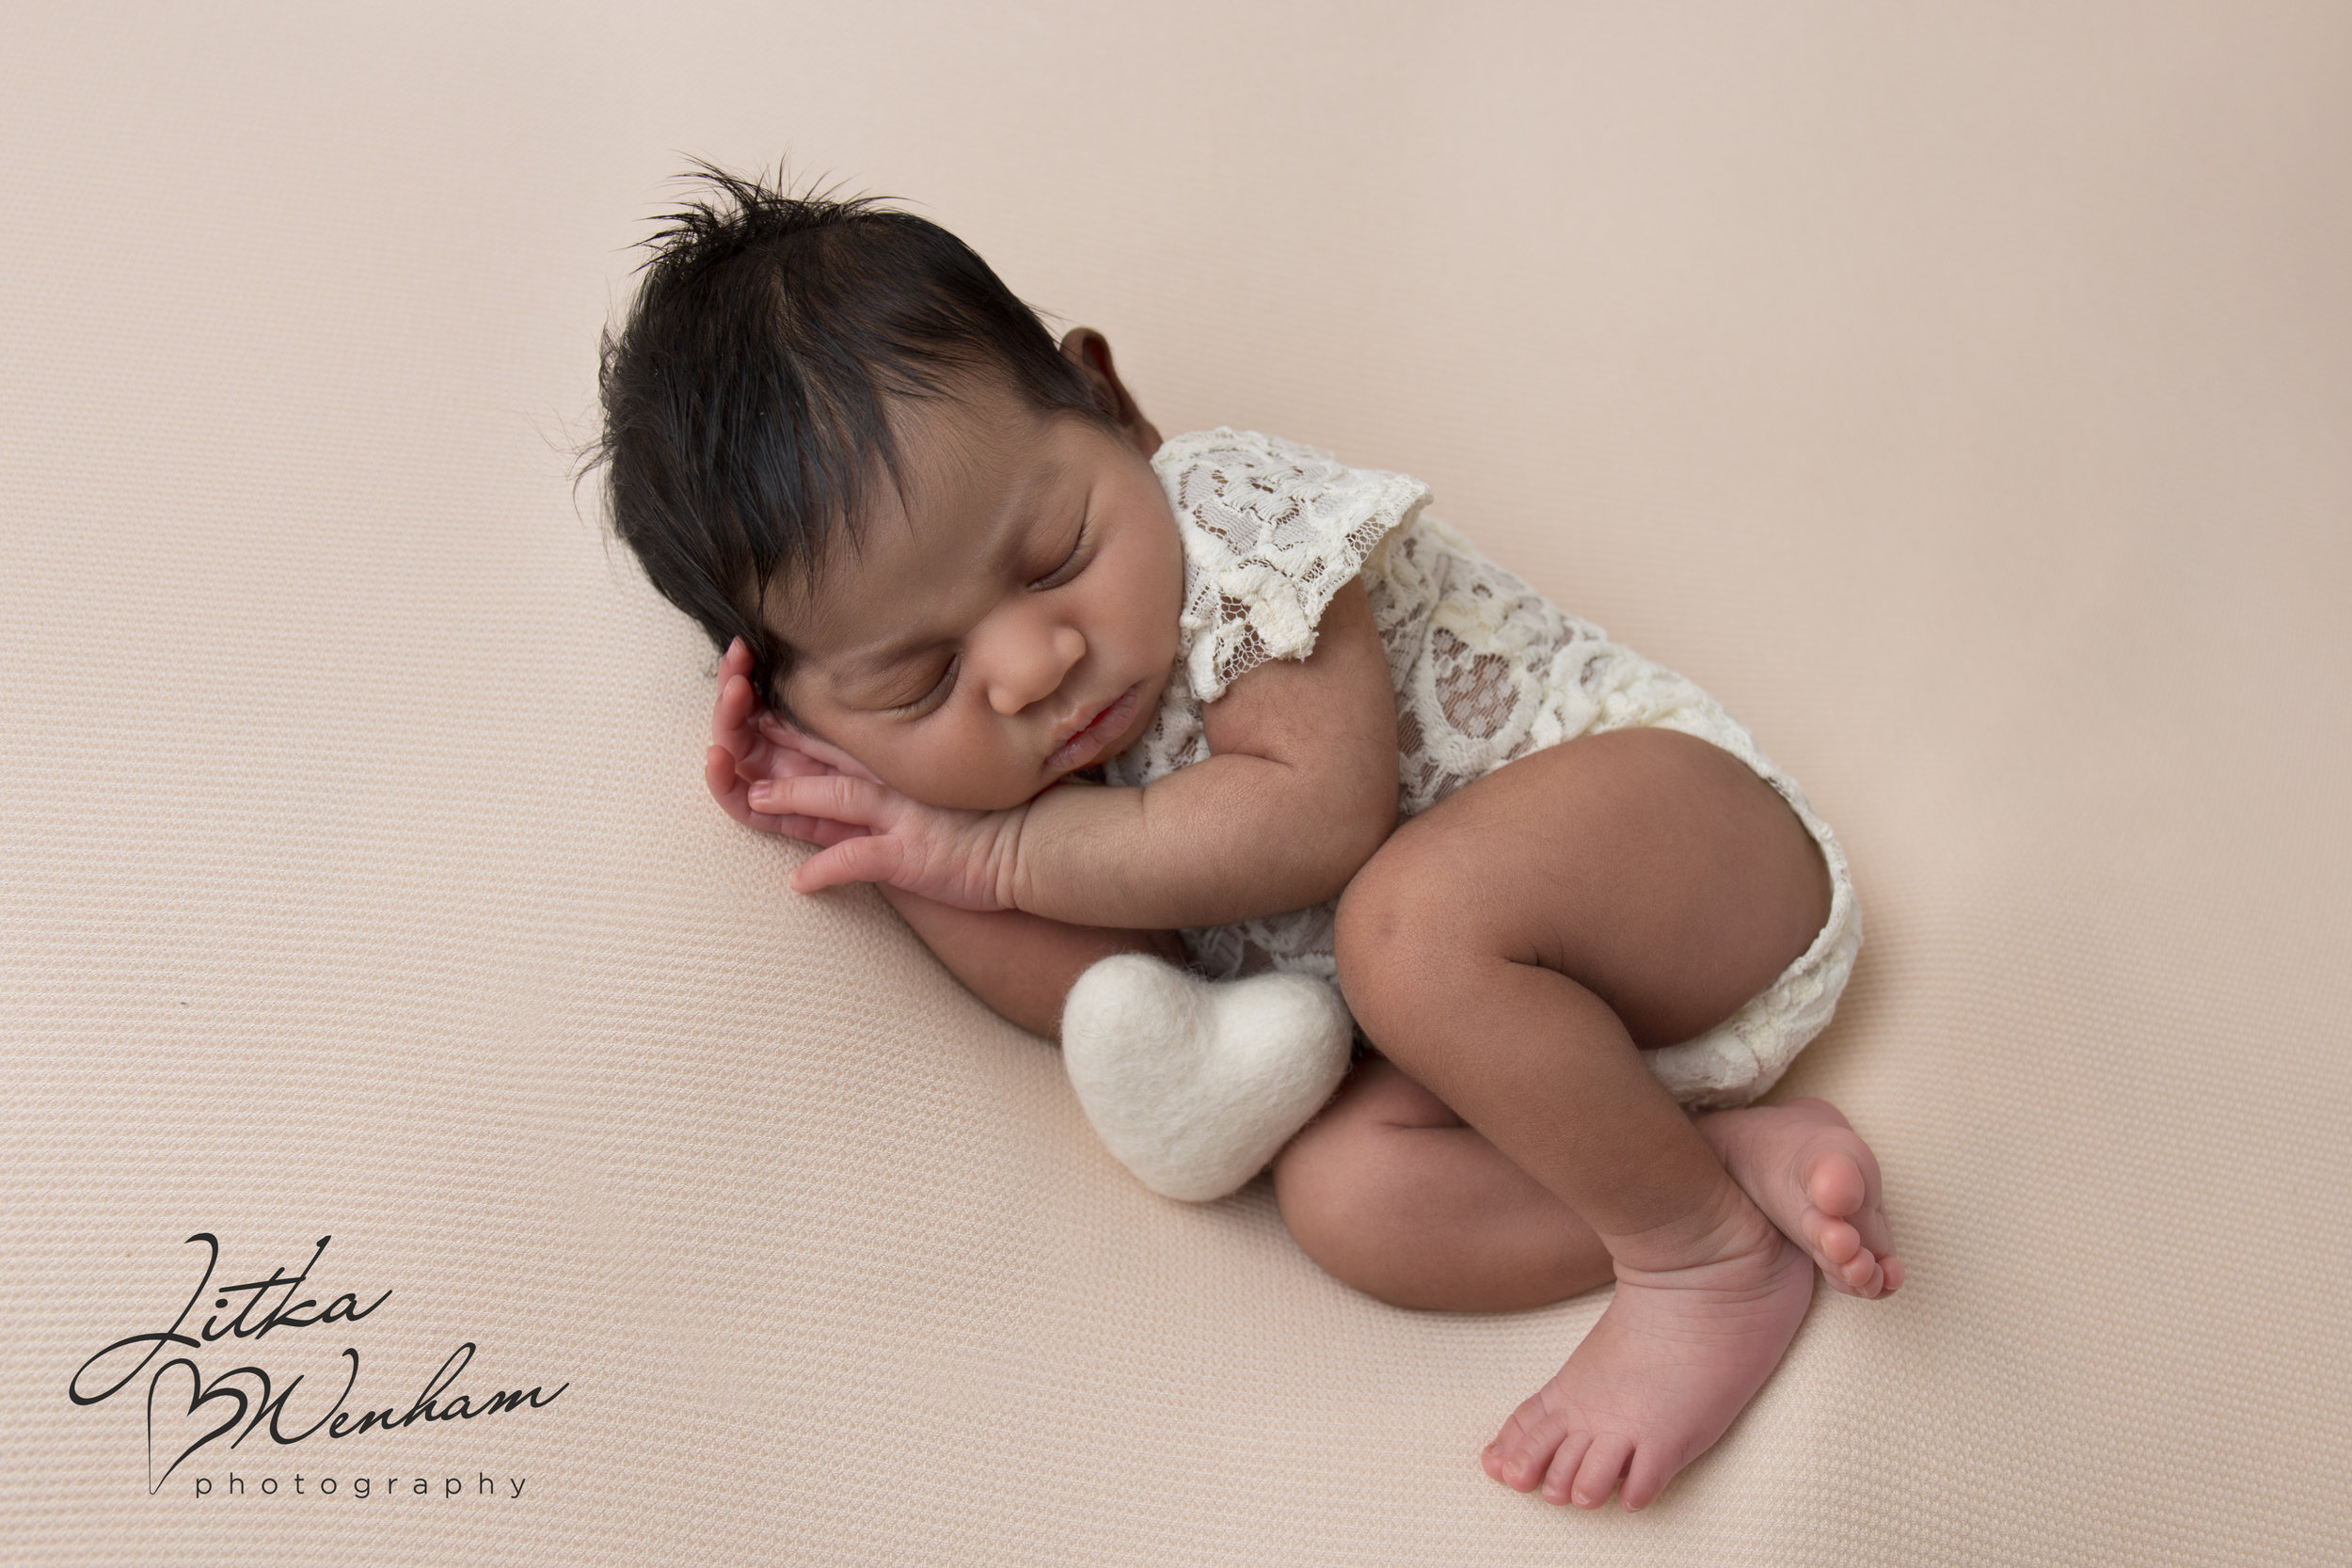 newborn-photography-children-baby-milton keynes-cake-smash-1-5-1-15.jpg